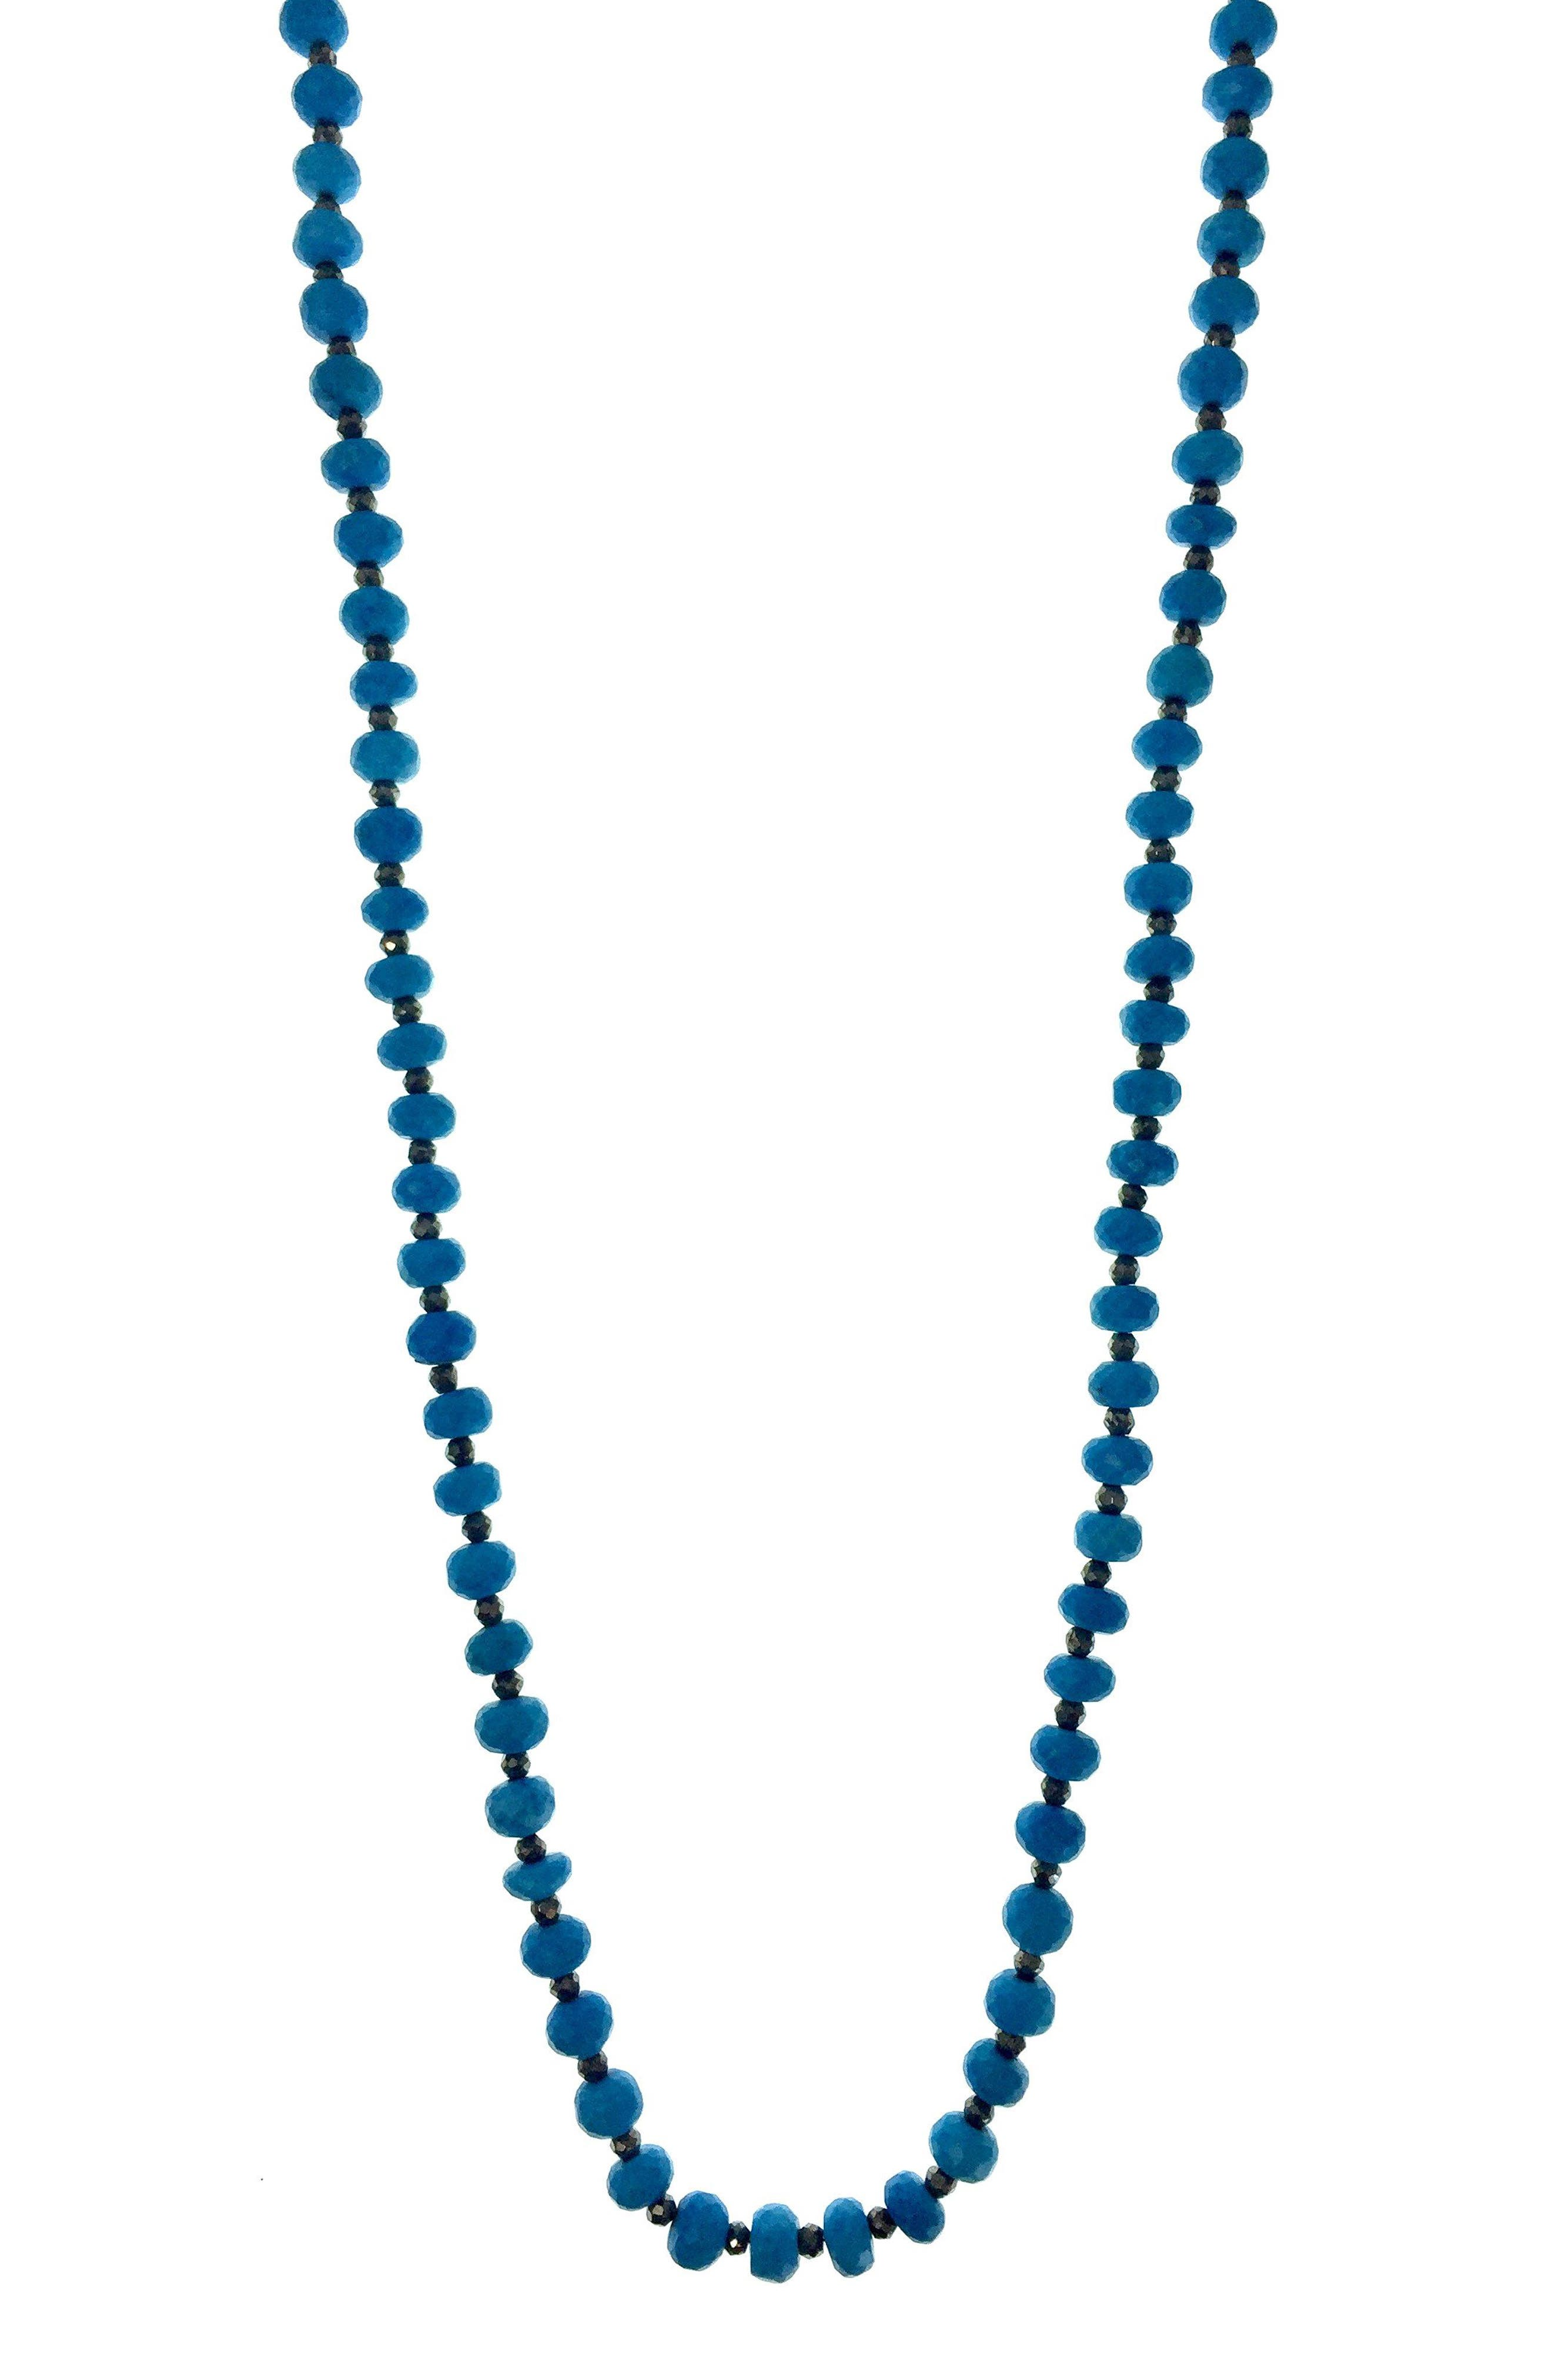 Solana Semiprecious Stone Necklace,                         Main,                         color, Turquoise